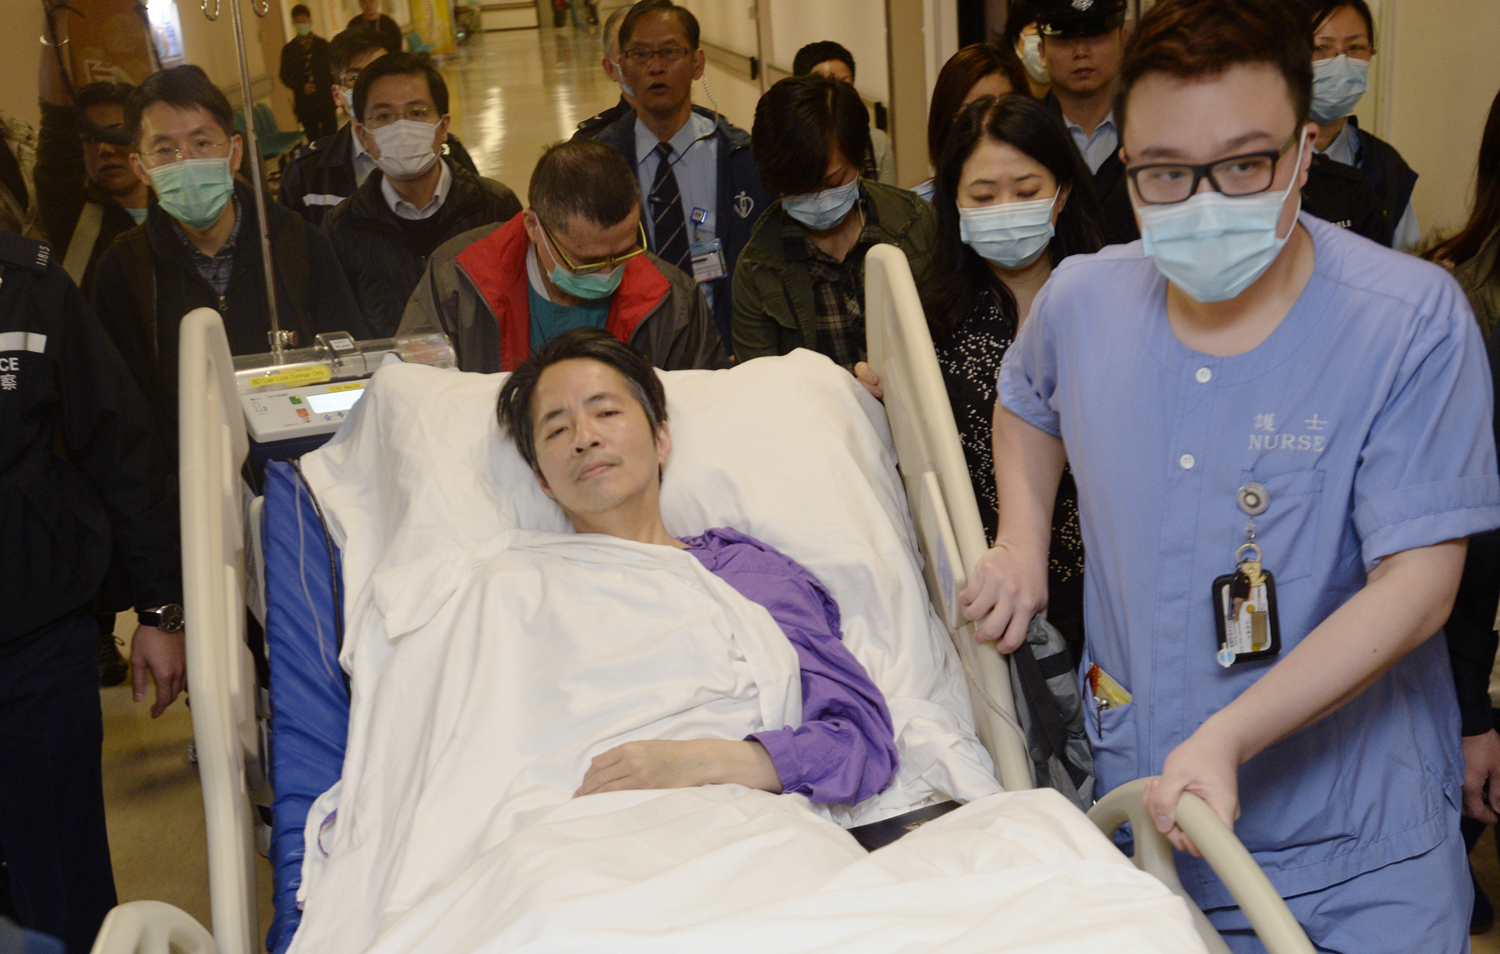 Ming Pao's former chief editor Kevin Lau, who was brutally attacked on Wednesday, is transferred to a private ward in Eastern Hospital after spending three days in intensive care in Hong Kong March 1, 2014.